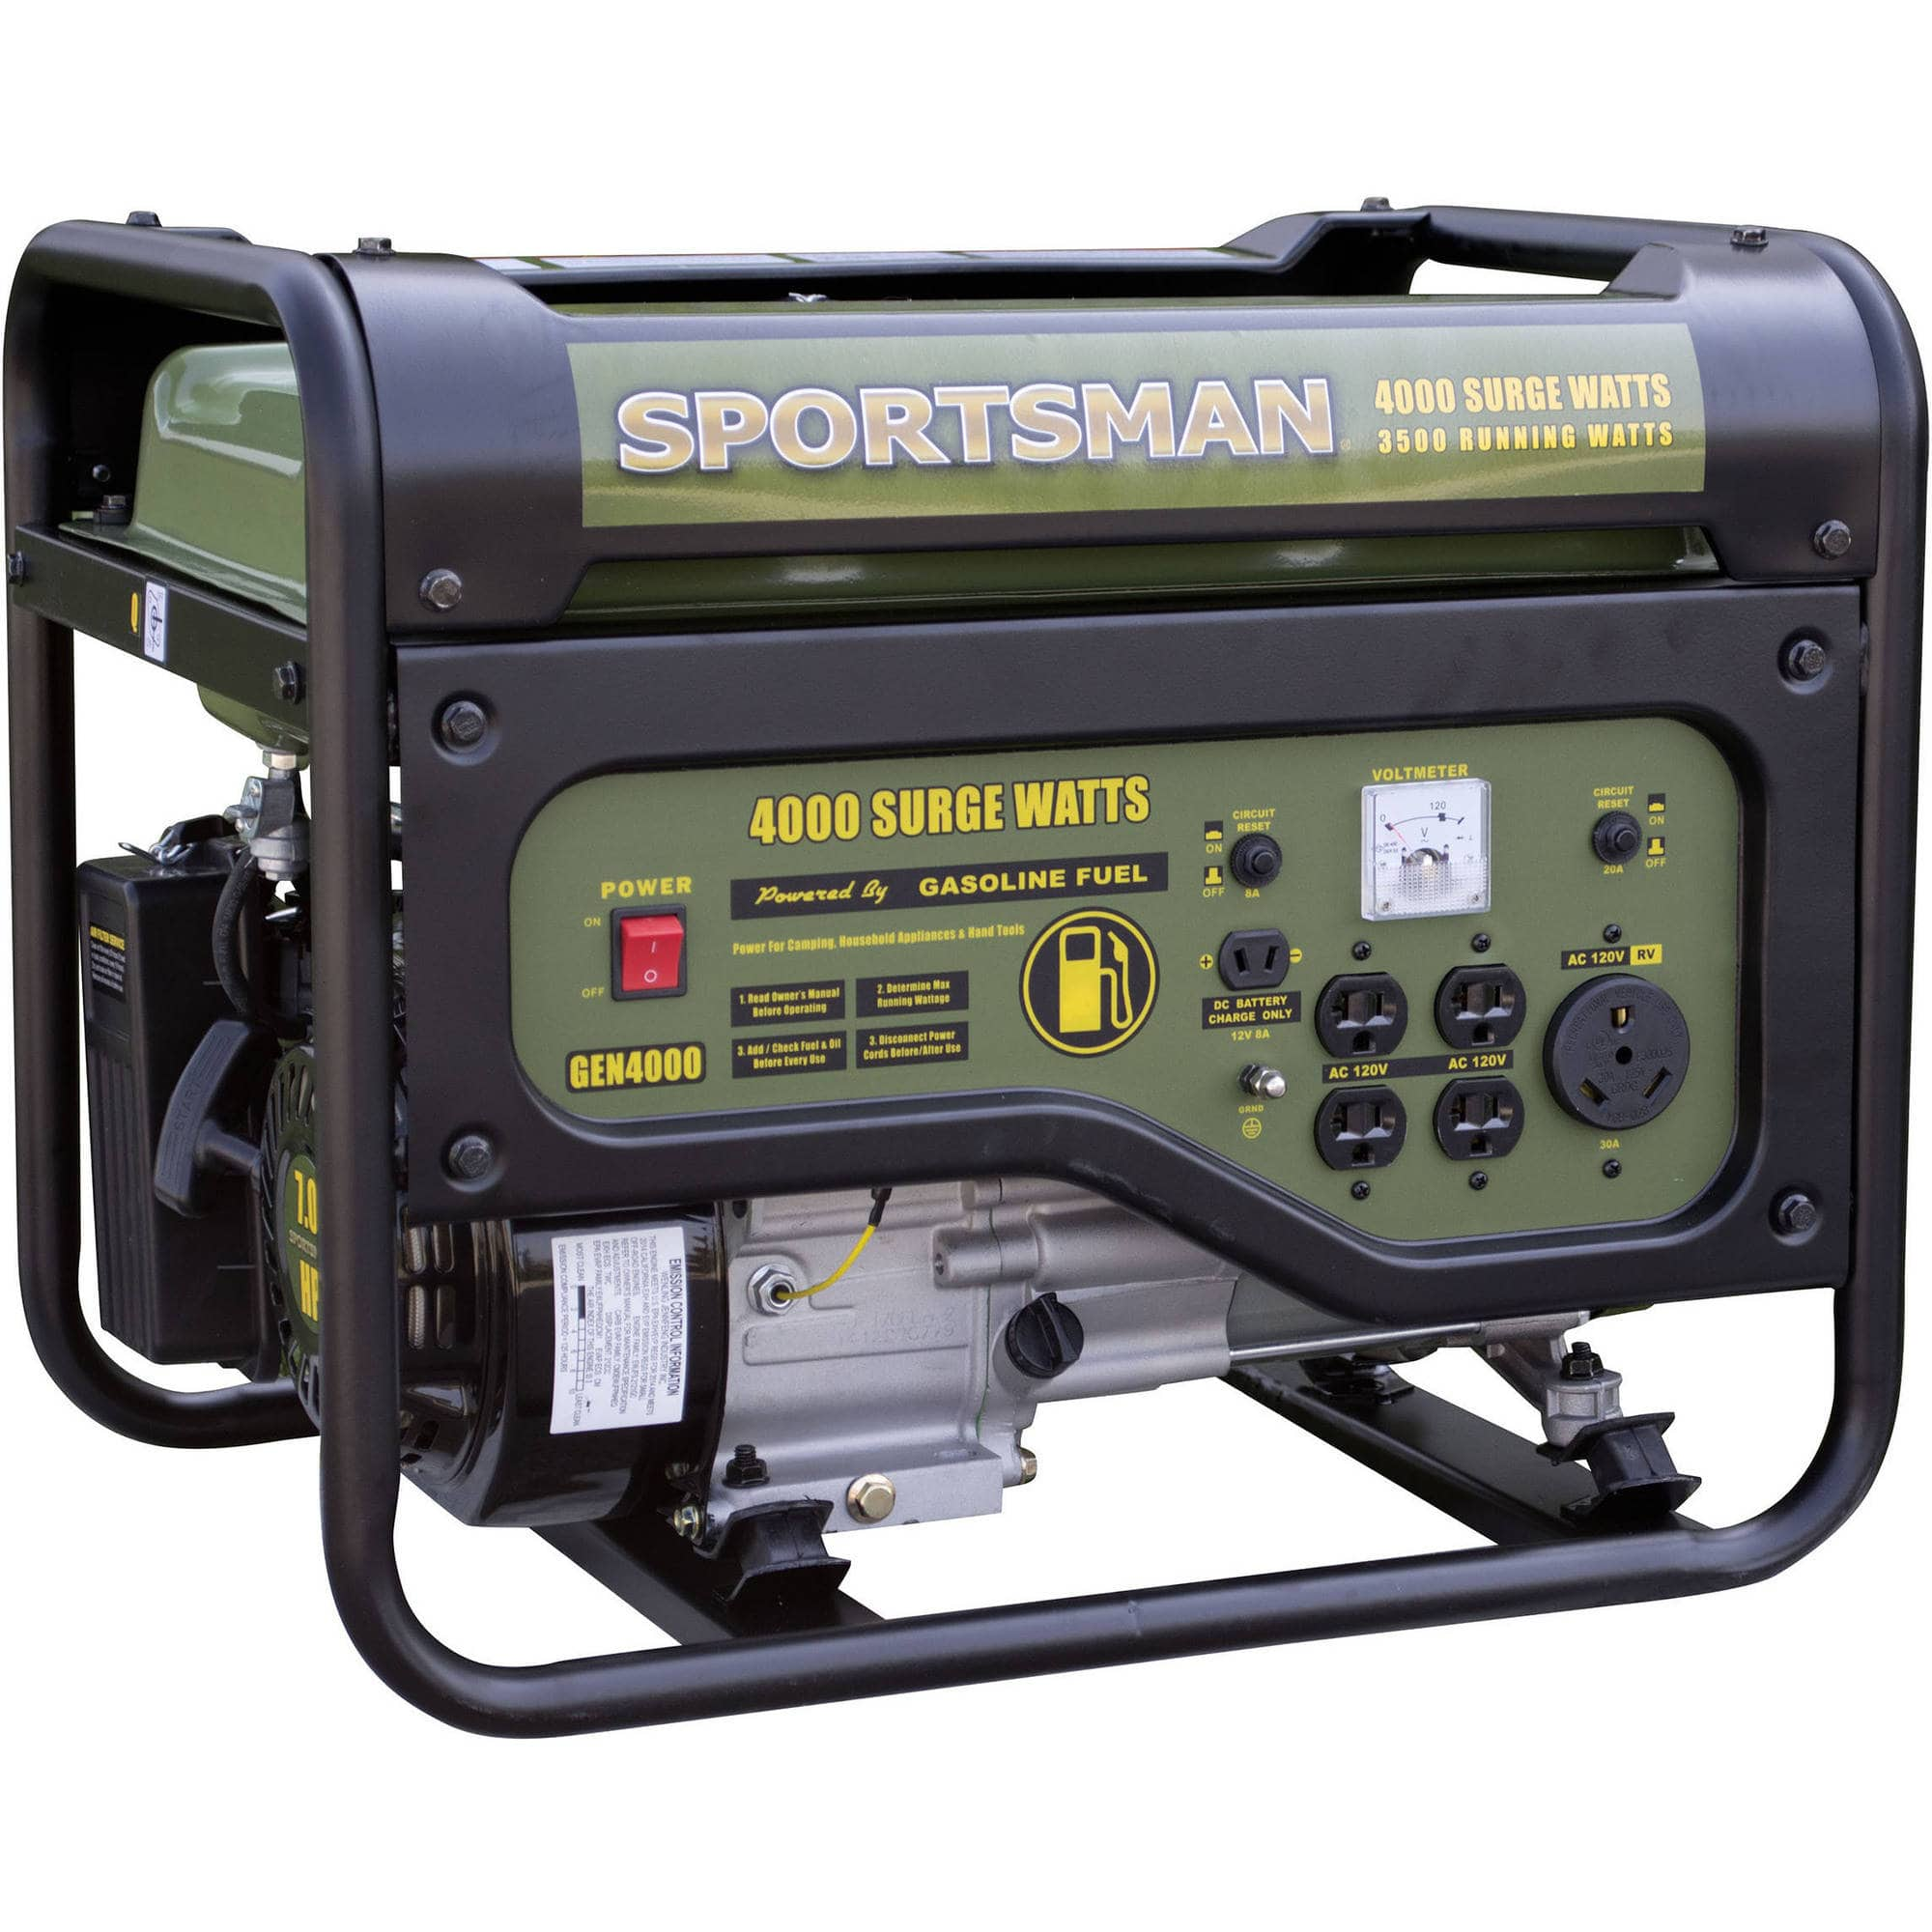 Sportsman Gasoline 4000W Portable Generator $249 Shipped via